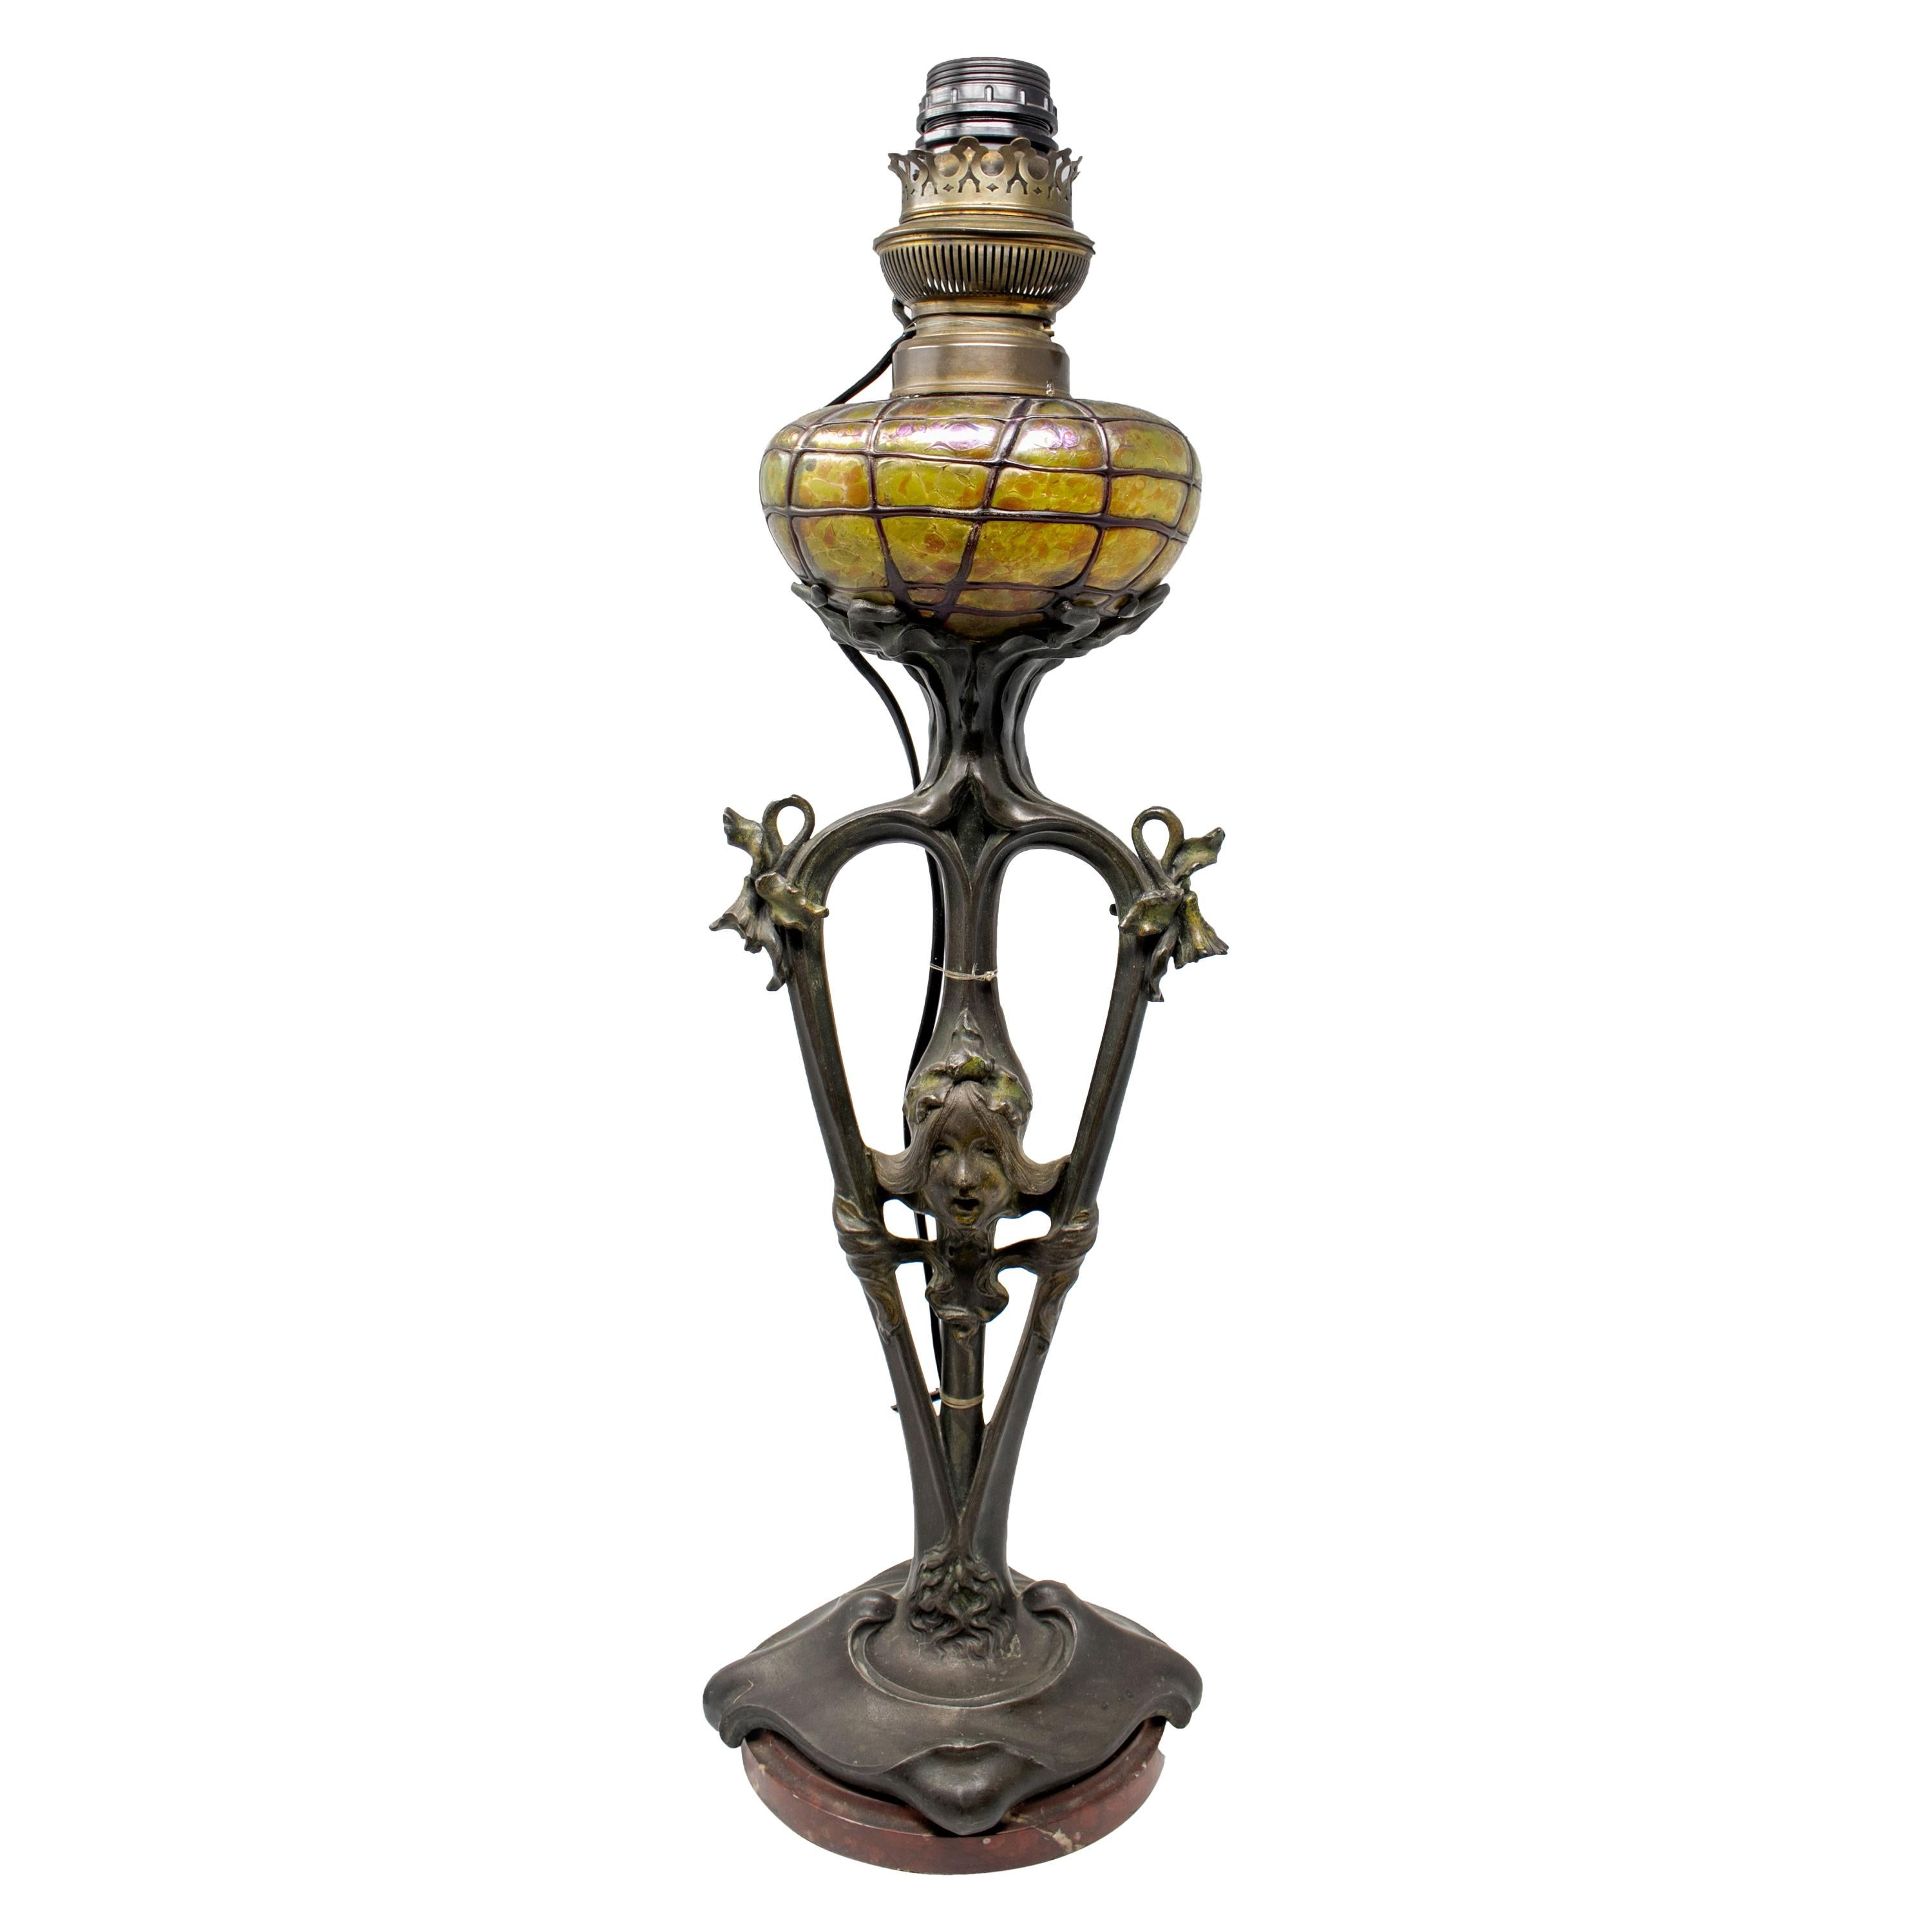 French Art Nouveau Bronze and Glass Signed Lamp